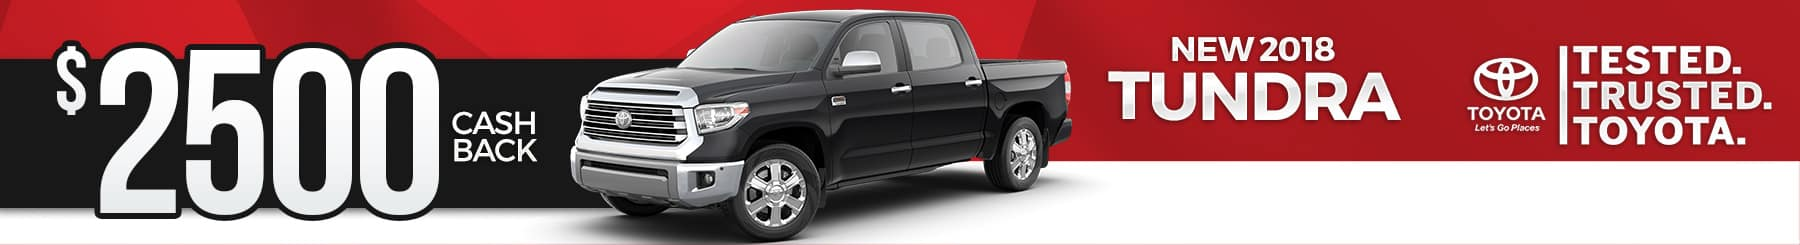 Toyota-Tundra-Cash Back-Special